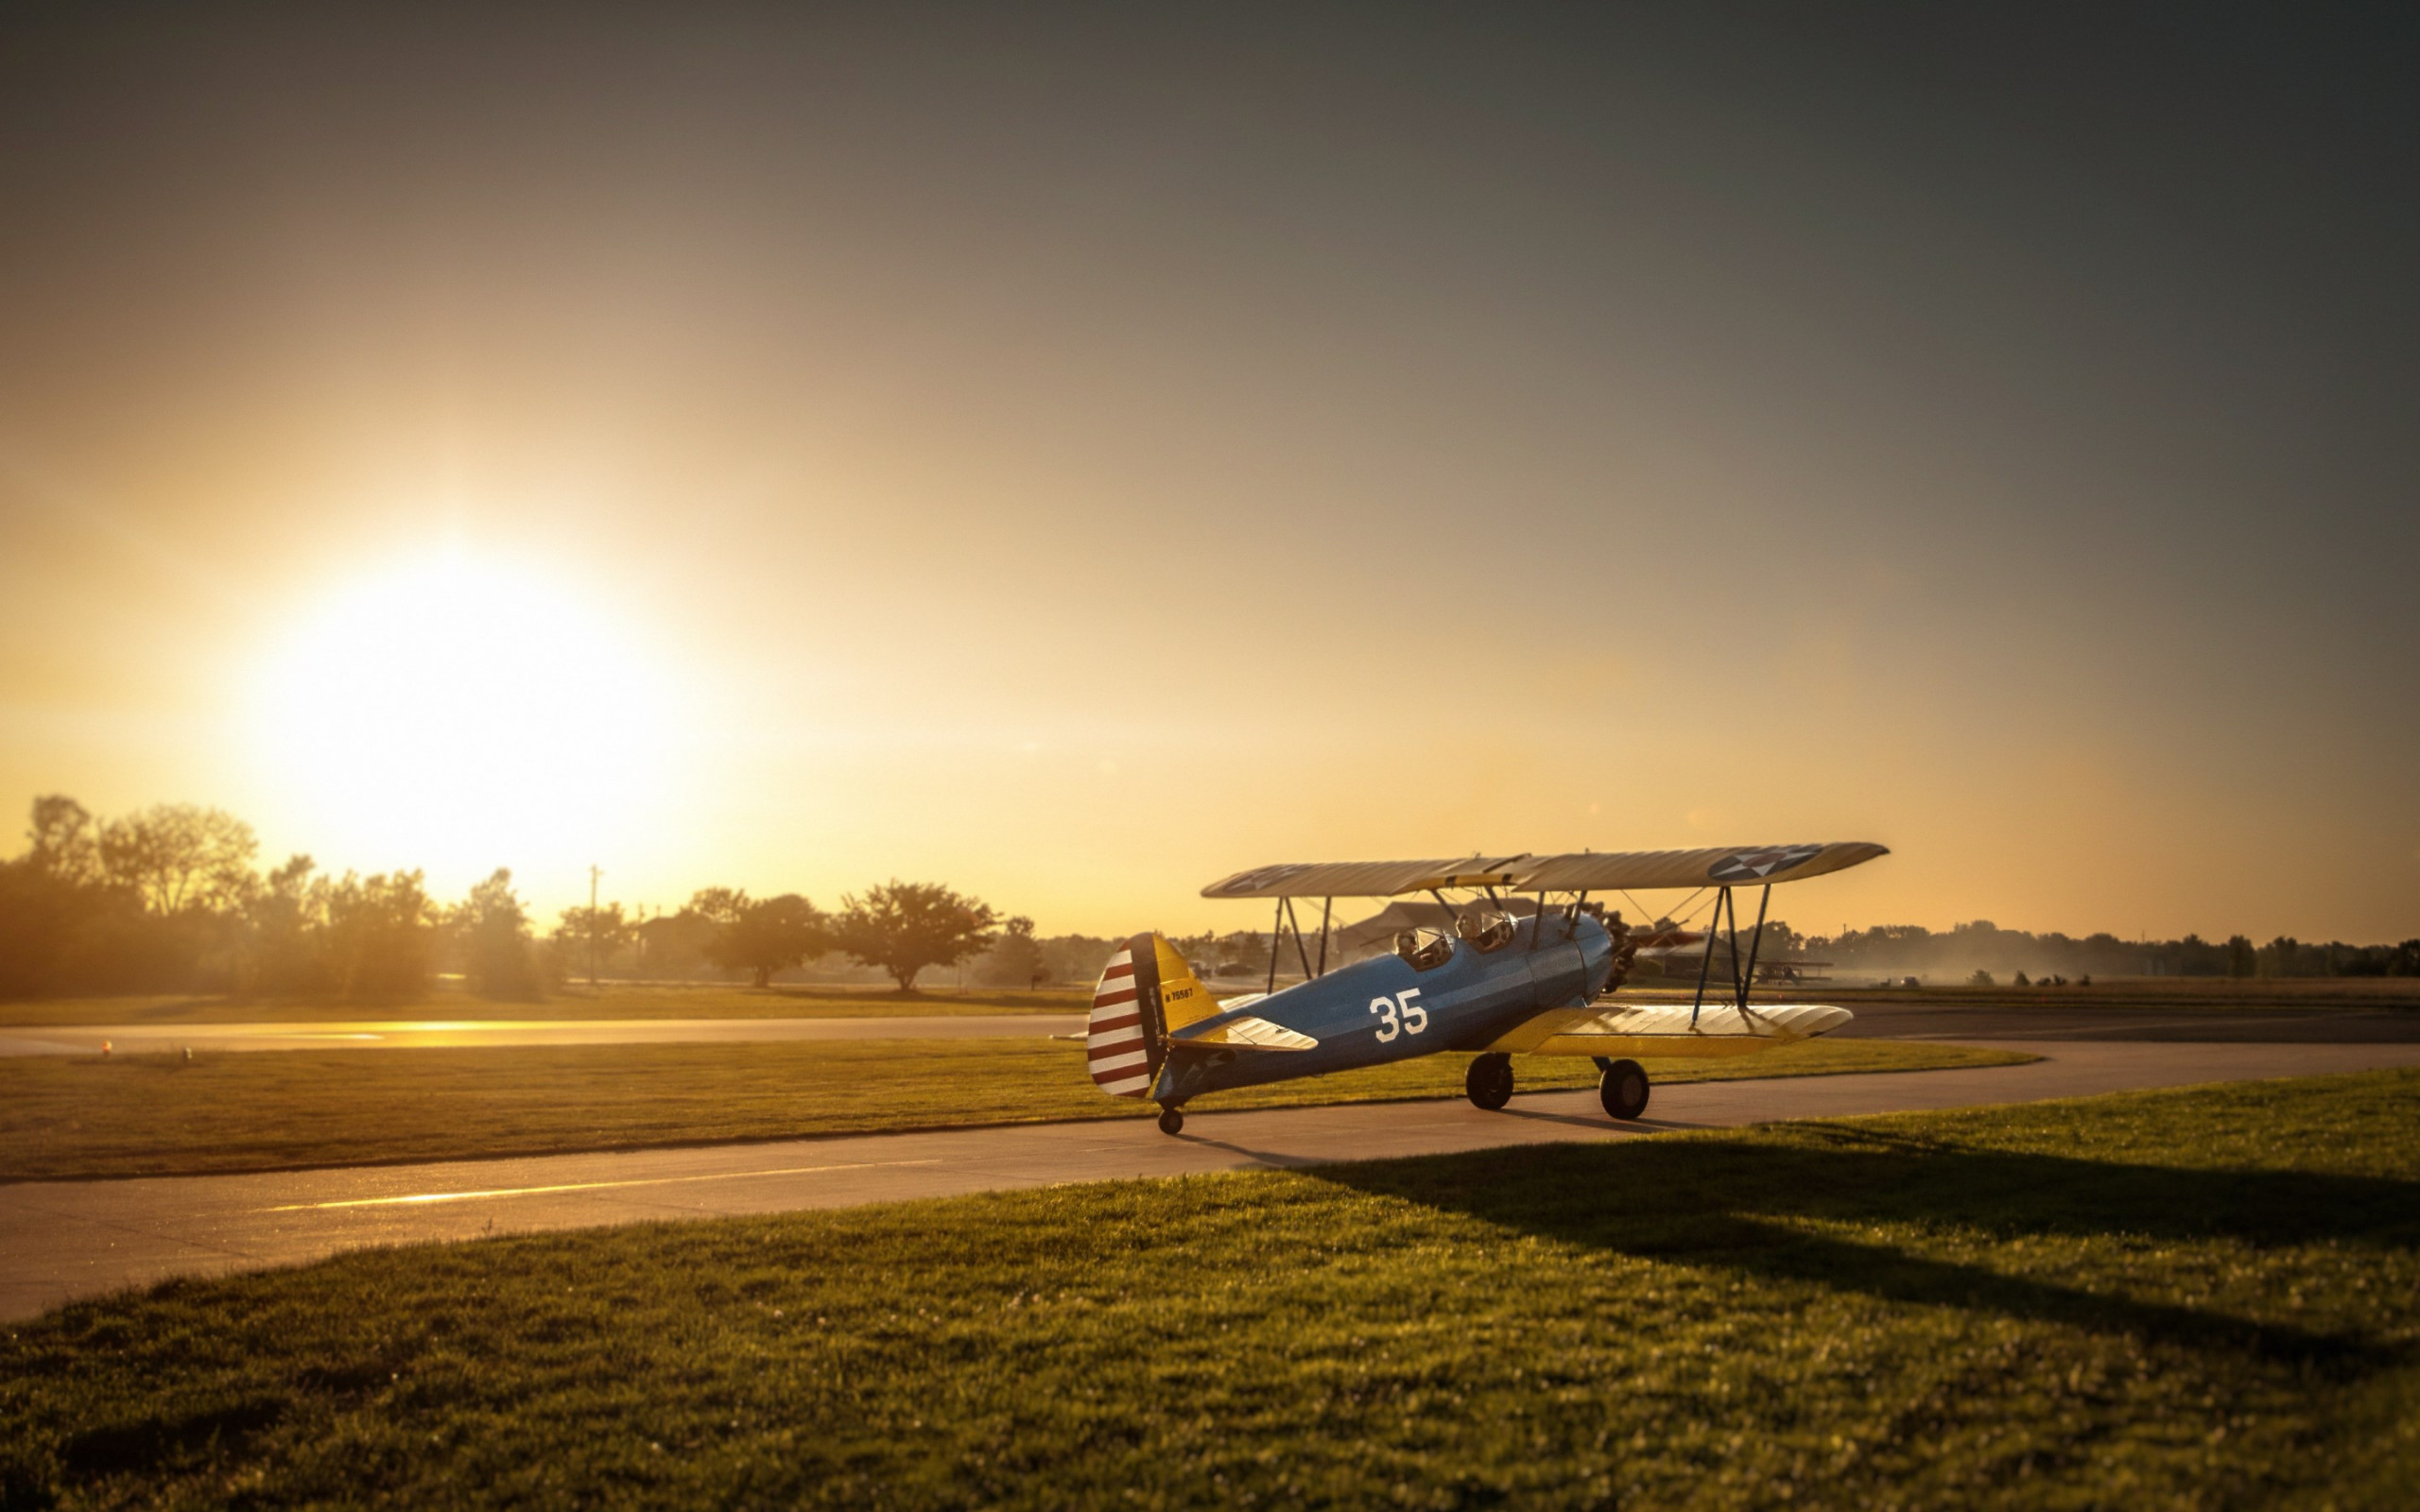 Boeing Stearman Airplane wallpaper 2560x1600